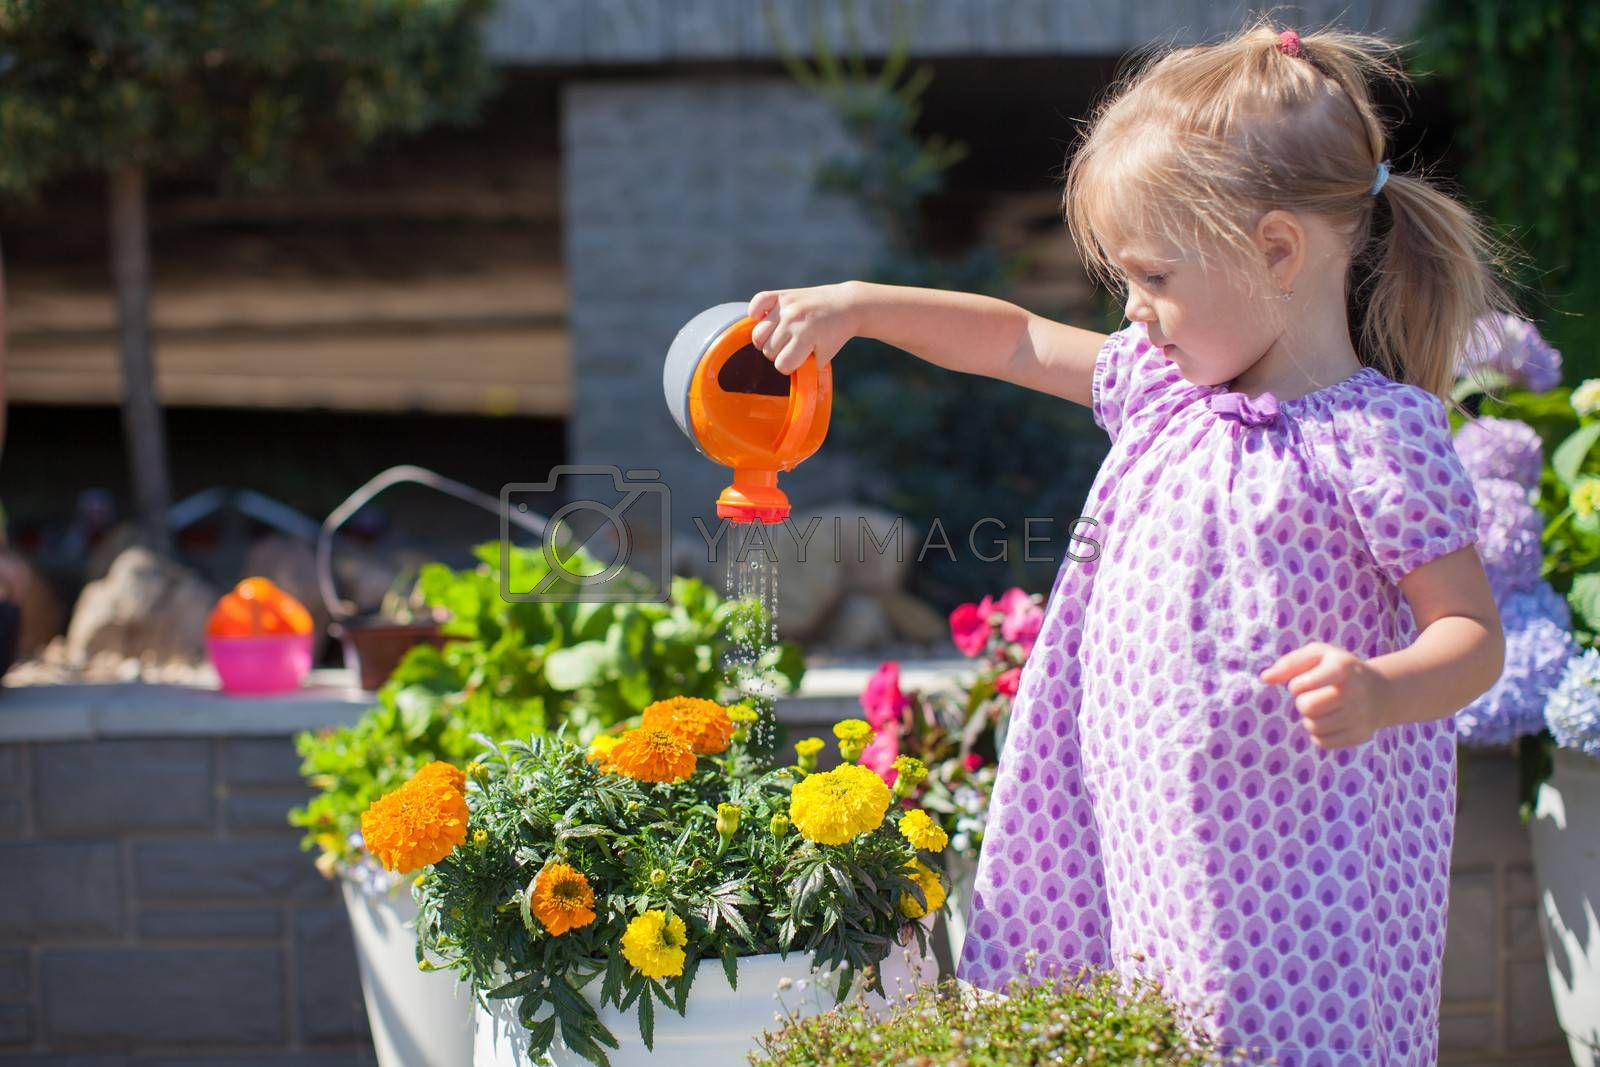 Royalty free image of Little nice girl watering flowers with a watering can by travnikovstudio